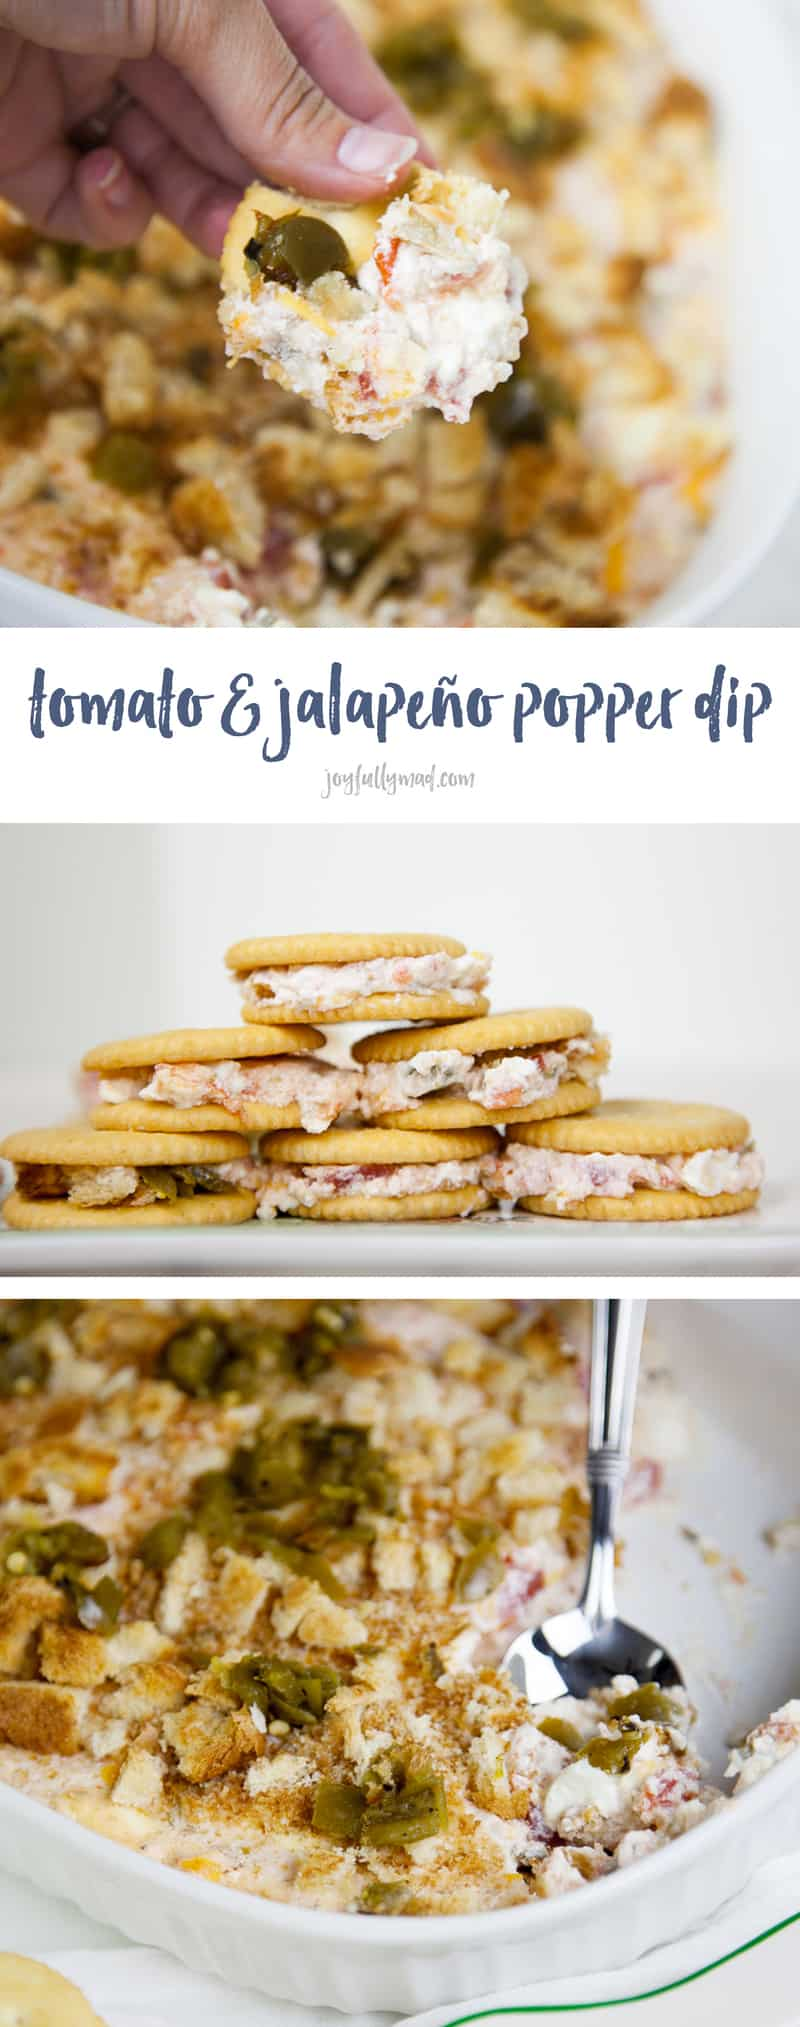 Need a party appetizer for the holidays this year? This quick tomato jalapeño popper dip is the perfect appetizer for those holiday parties!